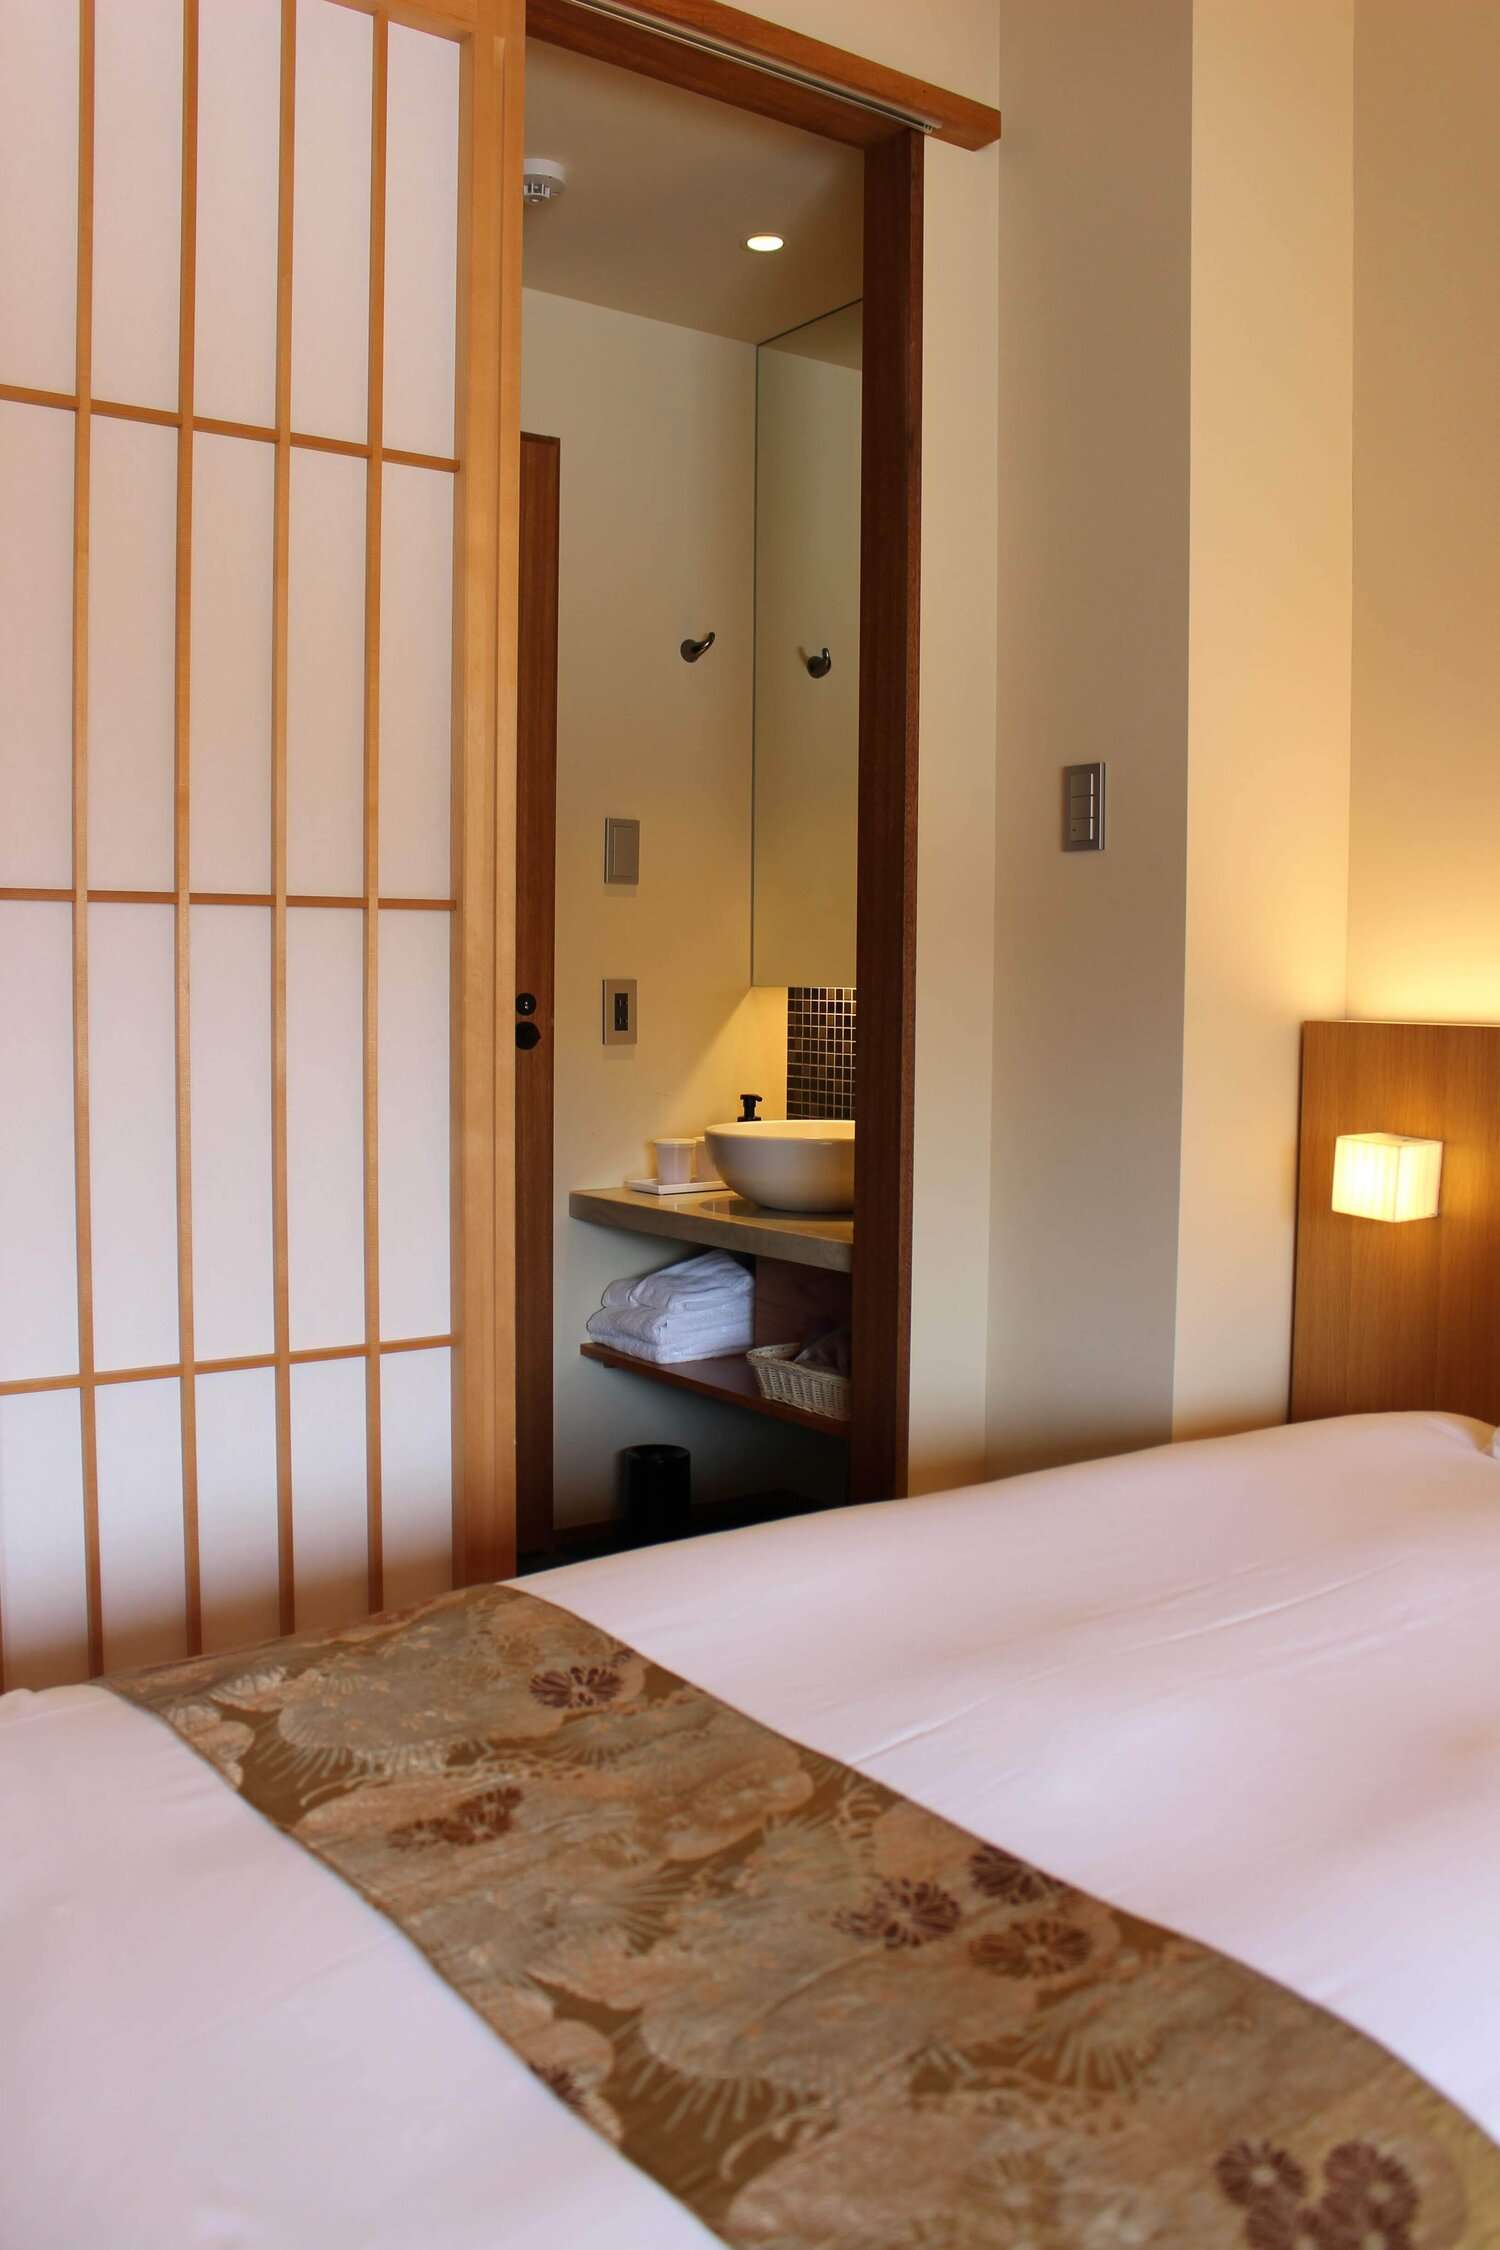 Hotel Ethnography Kyoto guest room